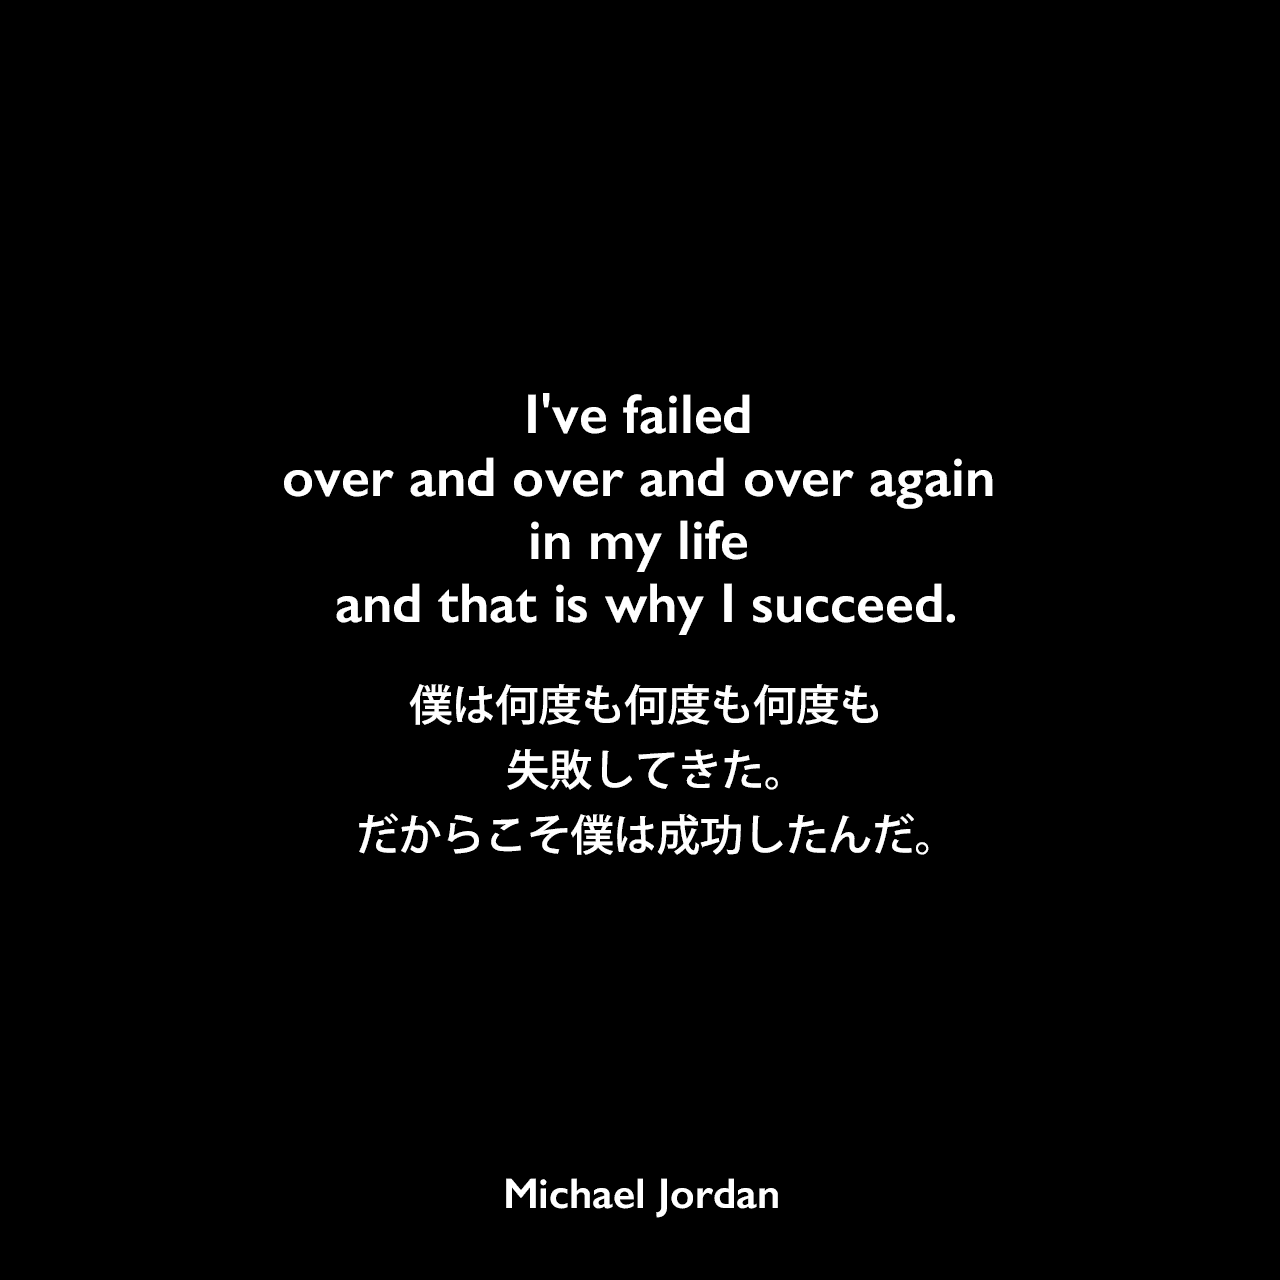 I've failed over and over and over again in my life and that is why I succeed.僕は何度も何度も何度も失敗してきた。だからこそ僕は成功したんだ。